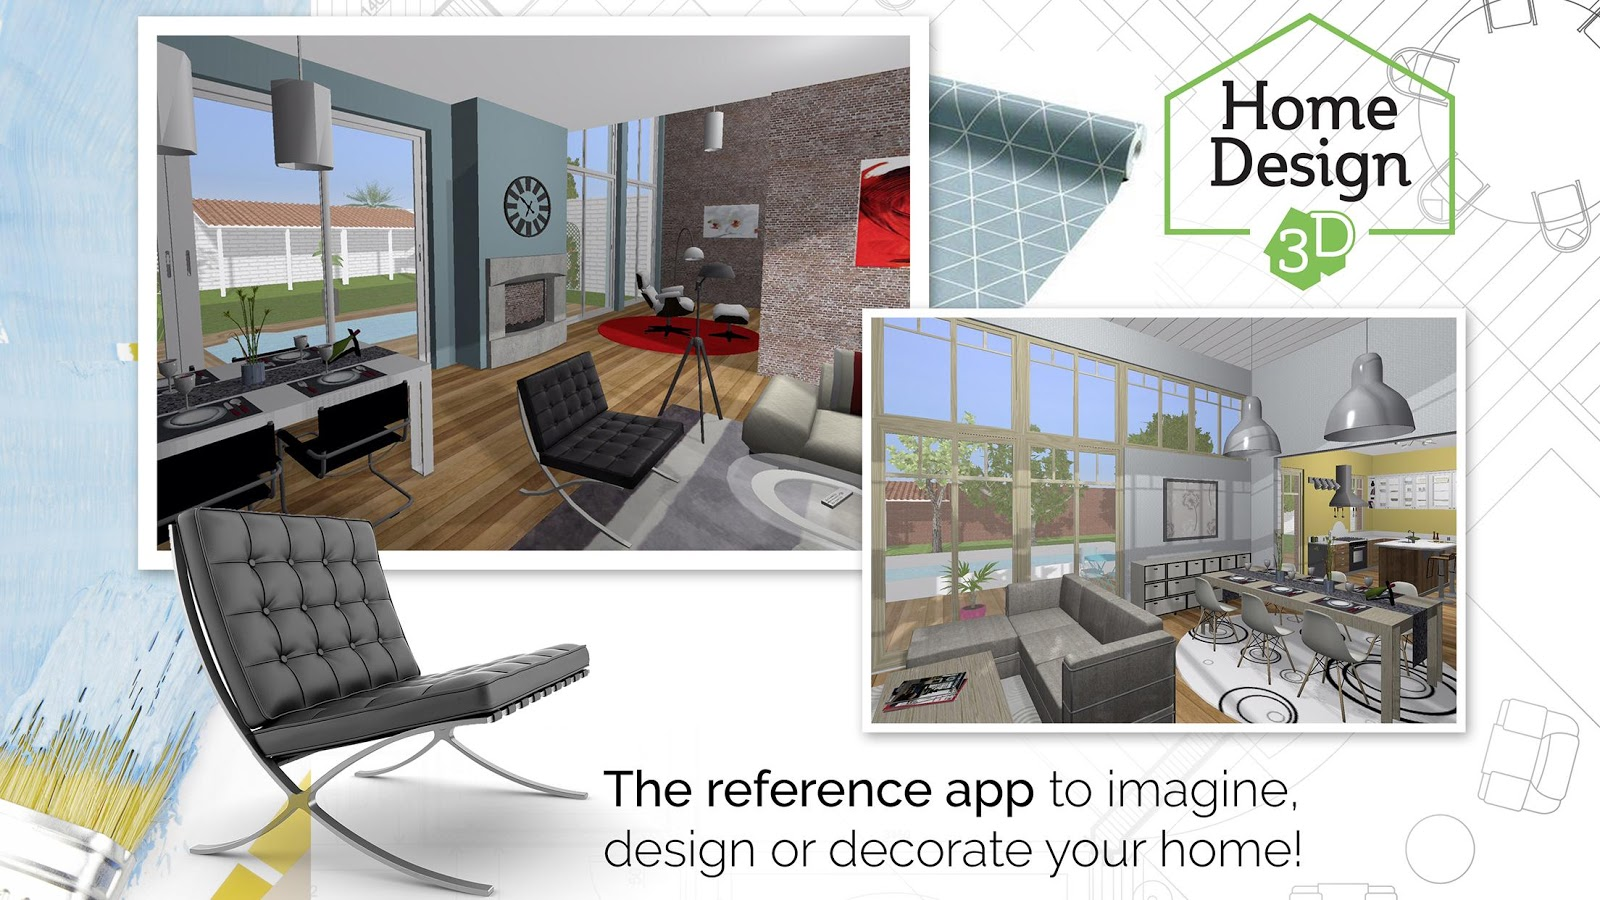 Home design 3d freemium android apps on google play Home design 3d